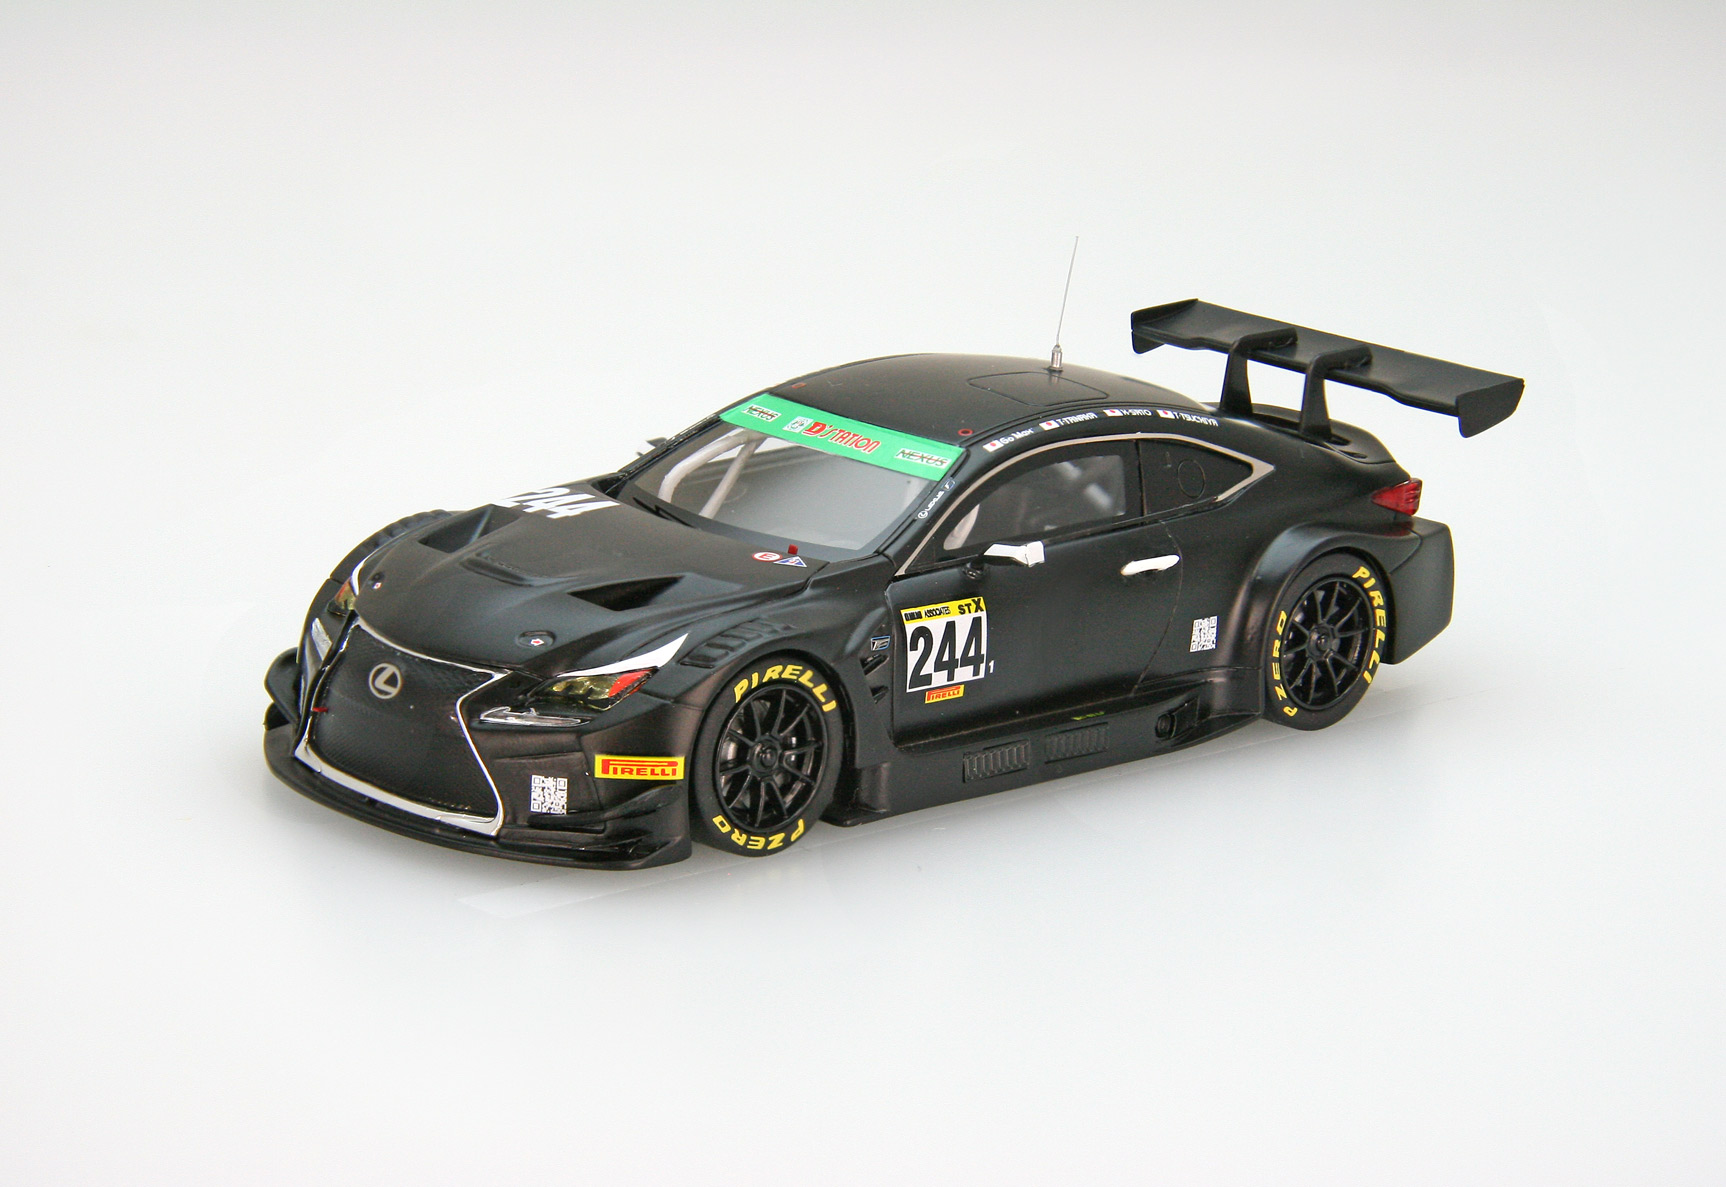 ☆予約品☆【45701】Max Racing RC F GT3 SUPER TAIKYU 2018 No.244 [RESIN]